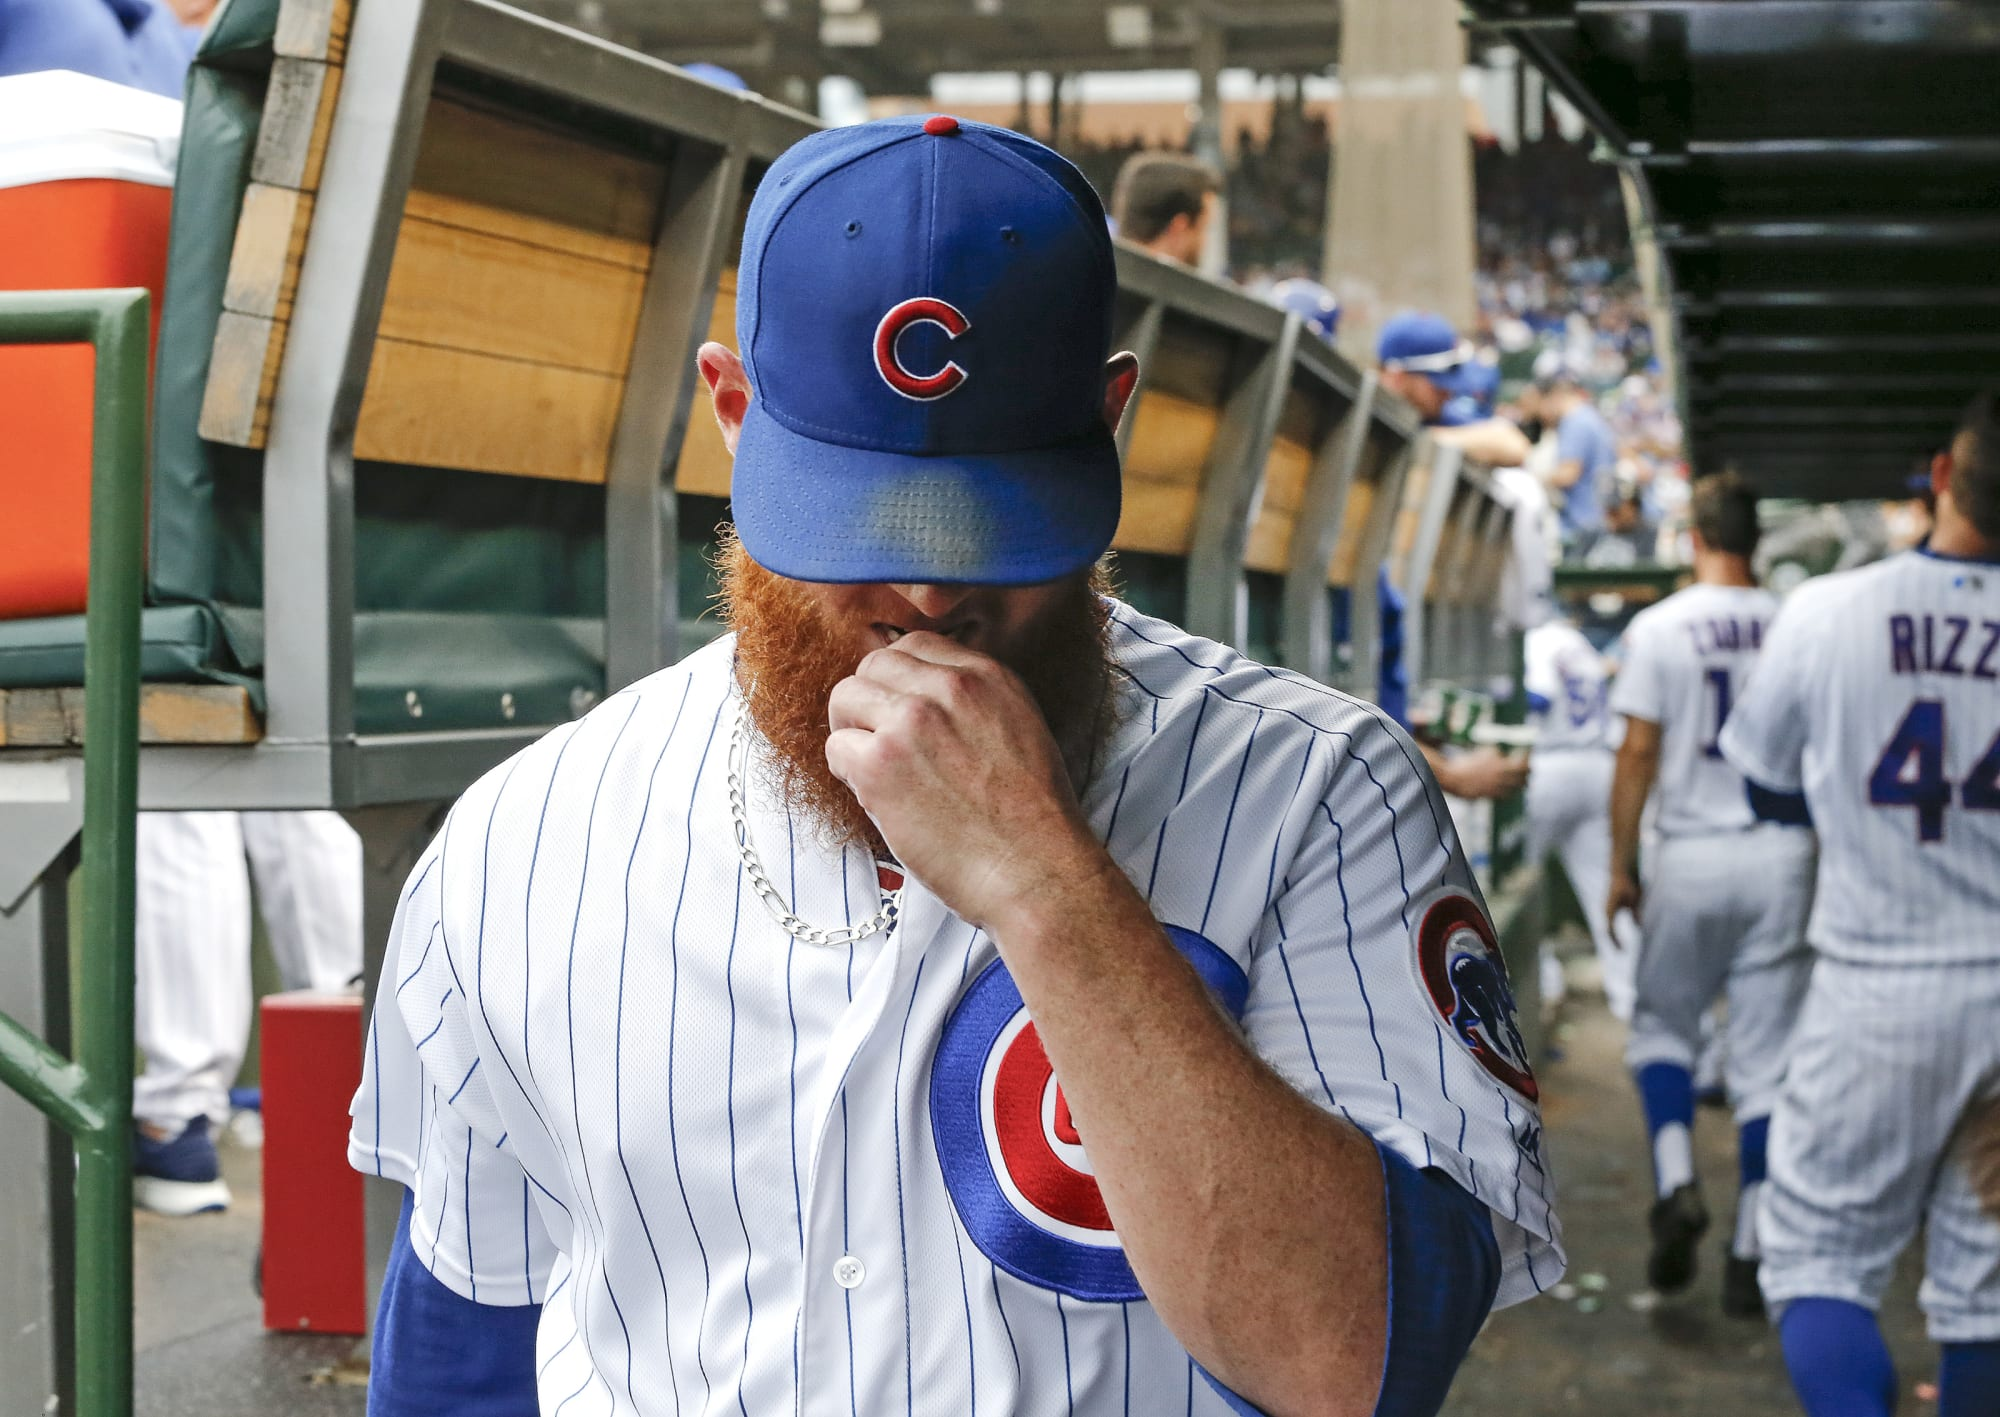 Chicago Cubs: The Craig Kimbrel deal is quickly becoming a disaster